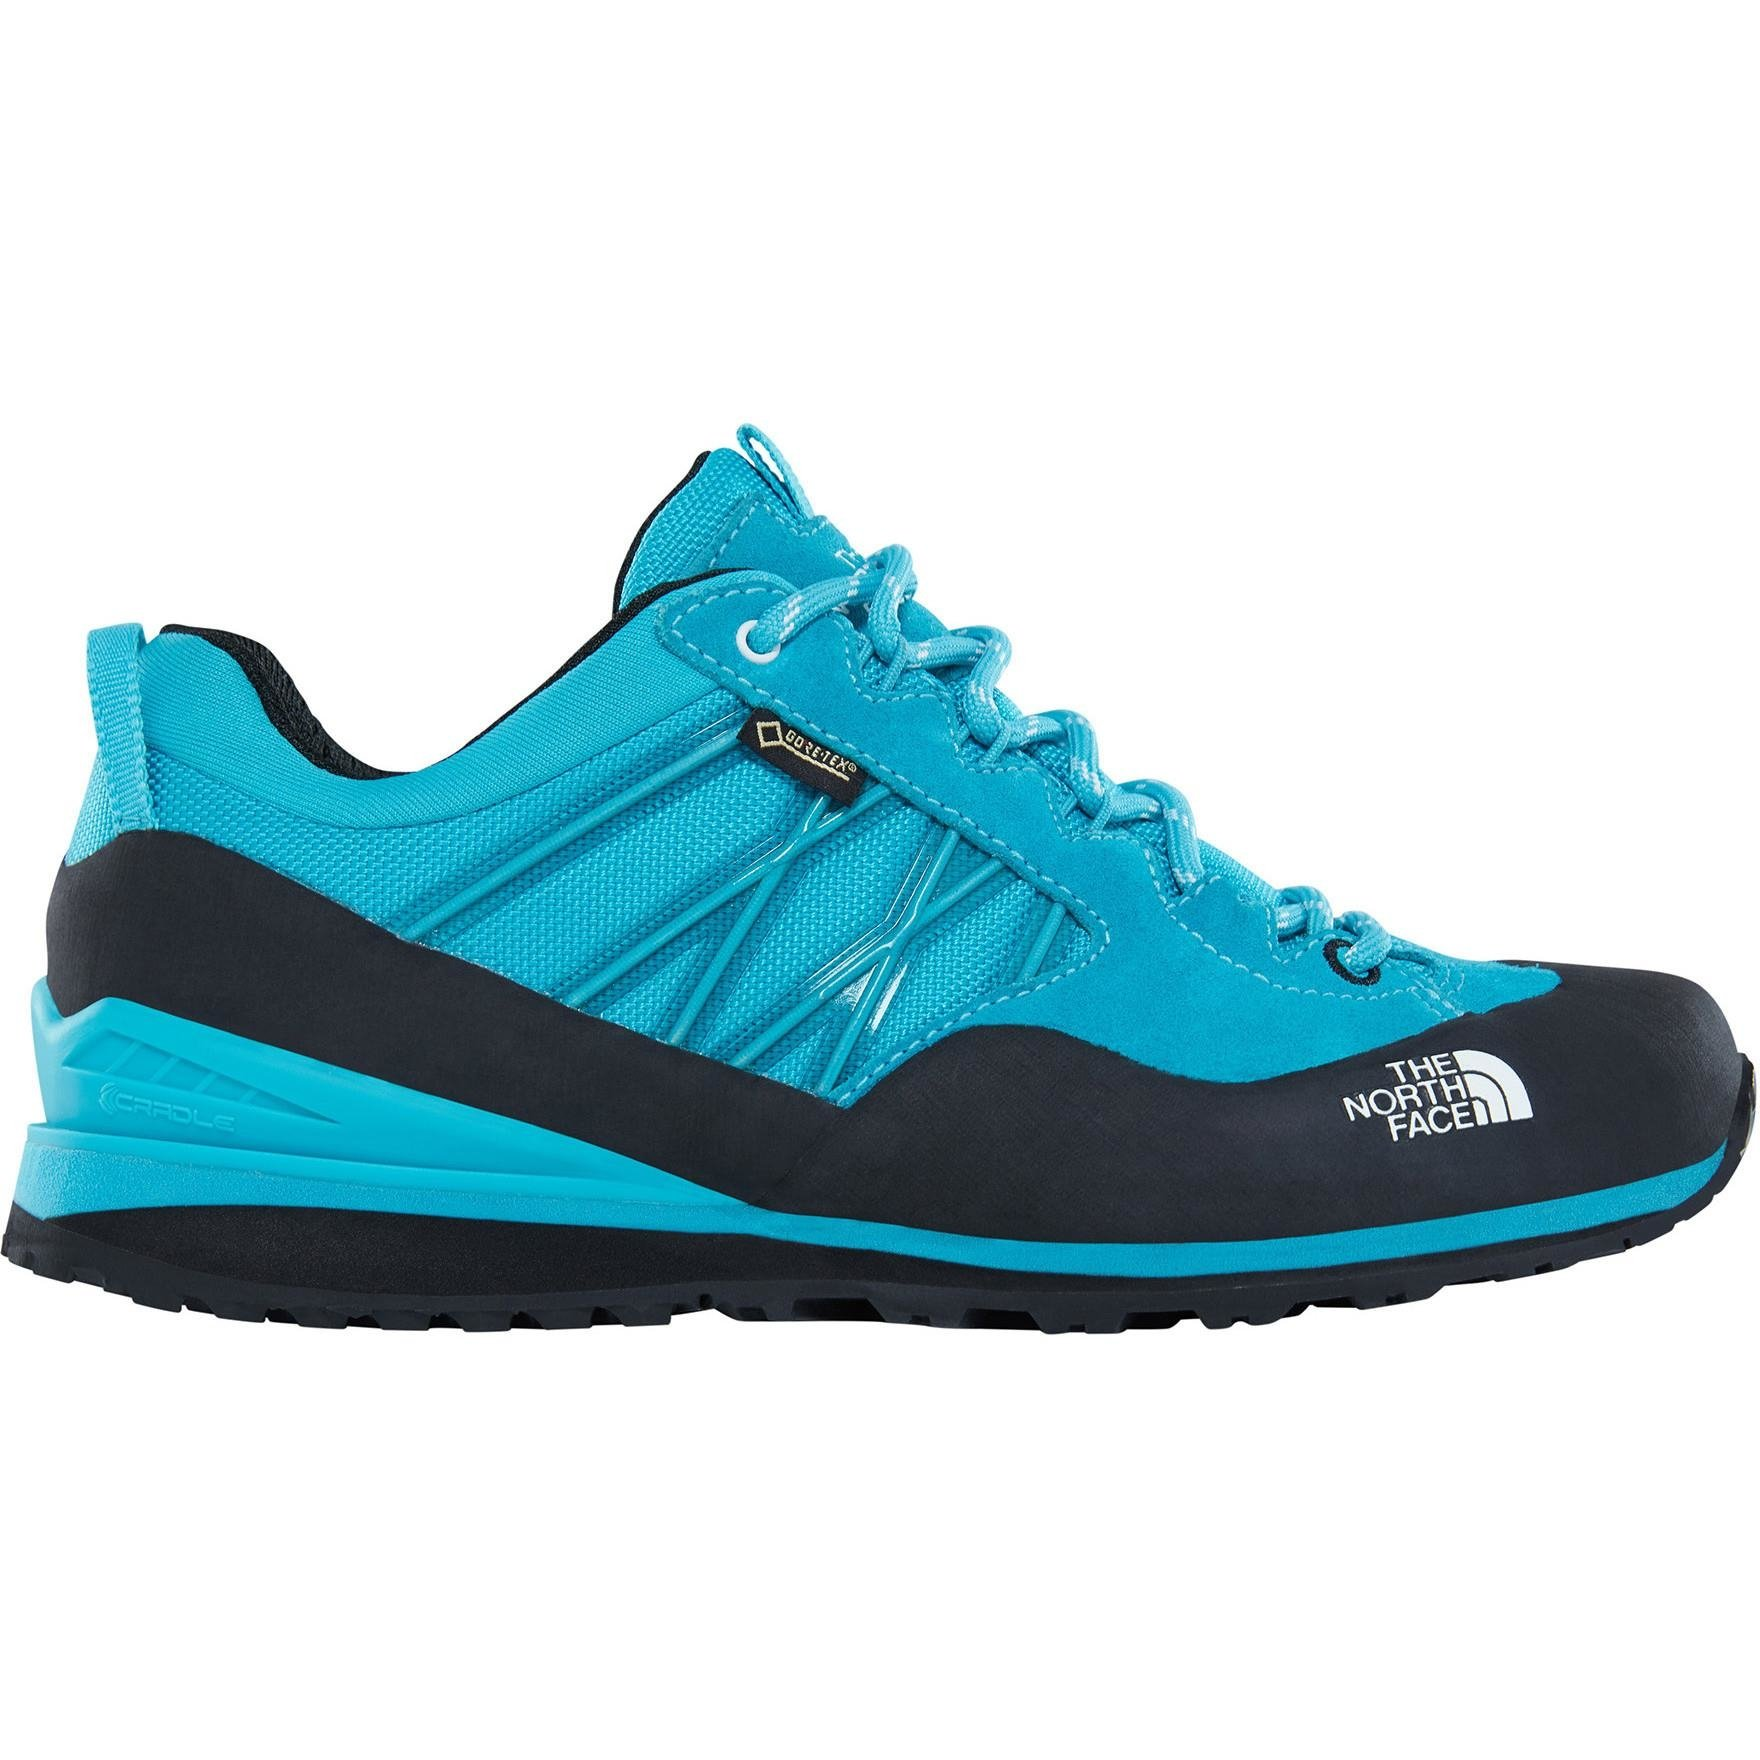 The North Face Verto Plasma Ii Gtx Online Shopping Has Never Been As Easy